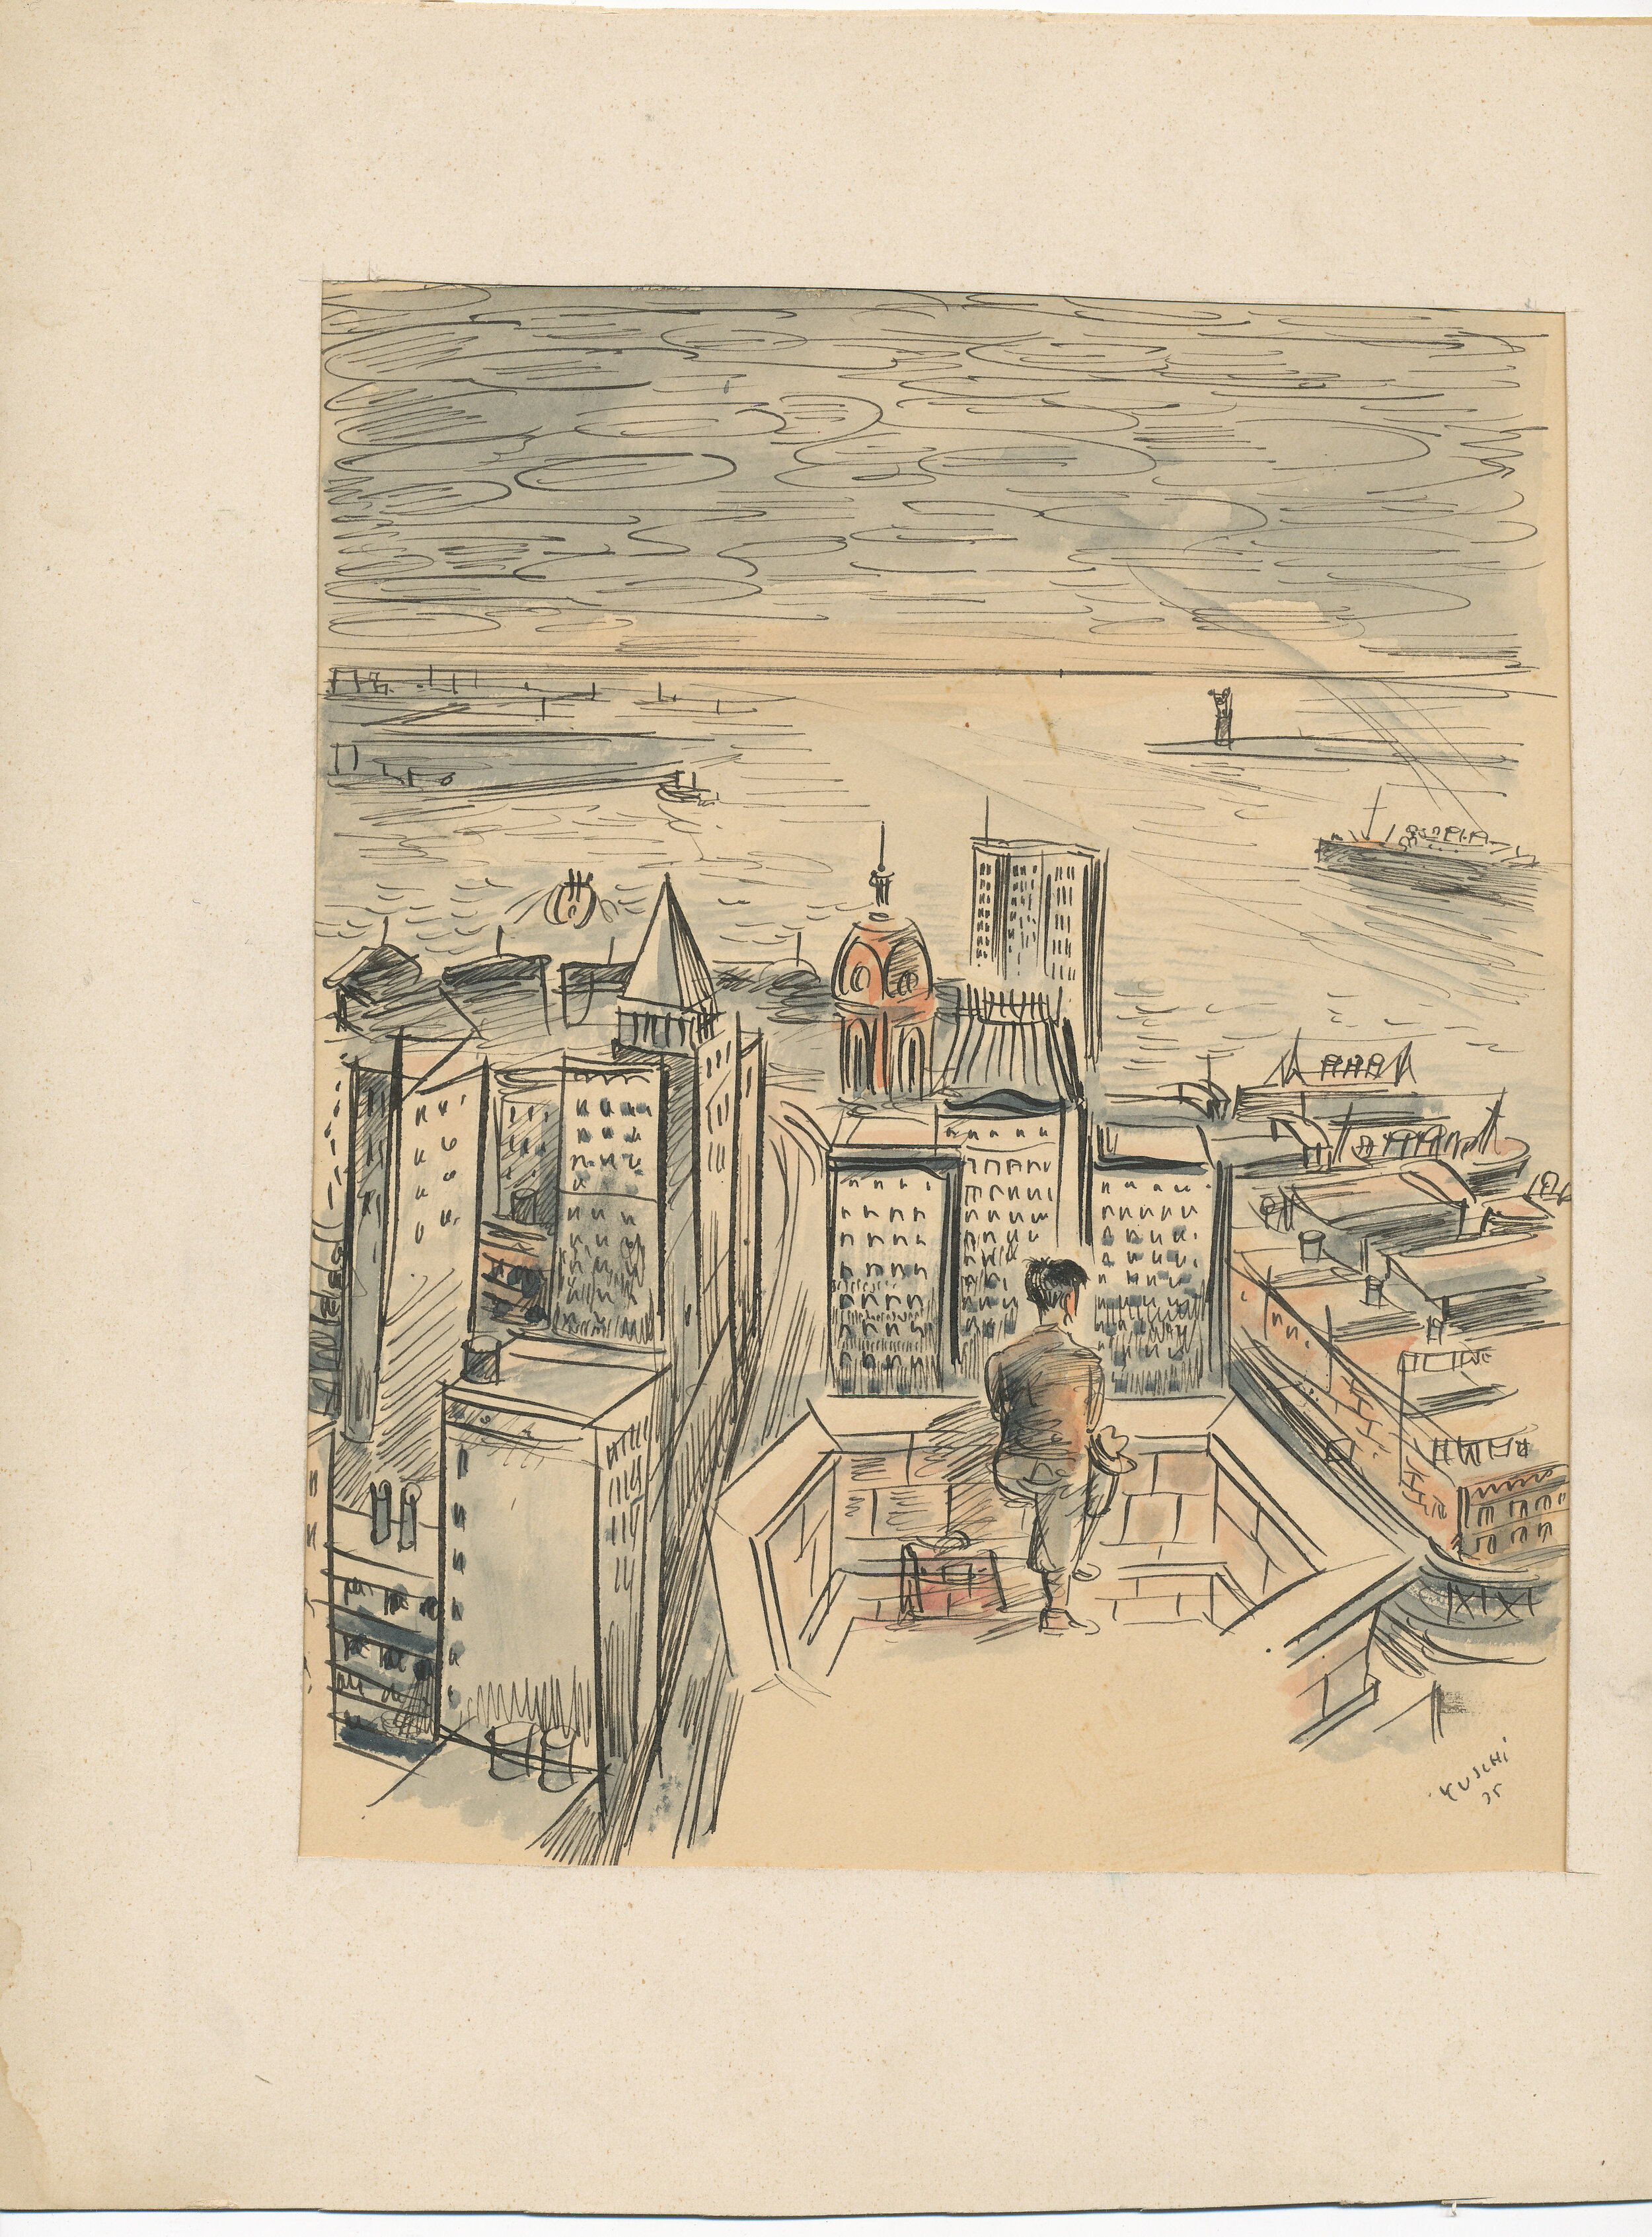 NY, pen and ink watercolour, 1935